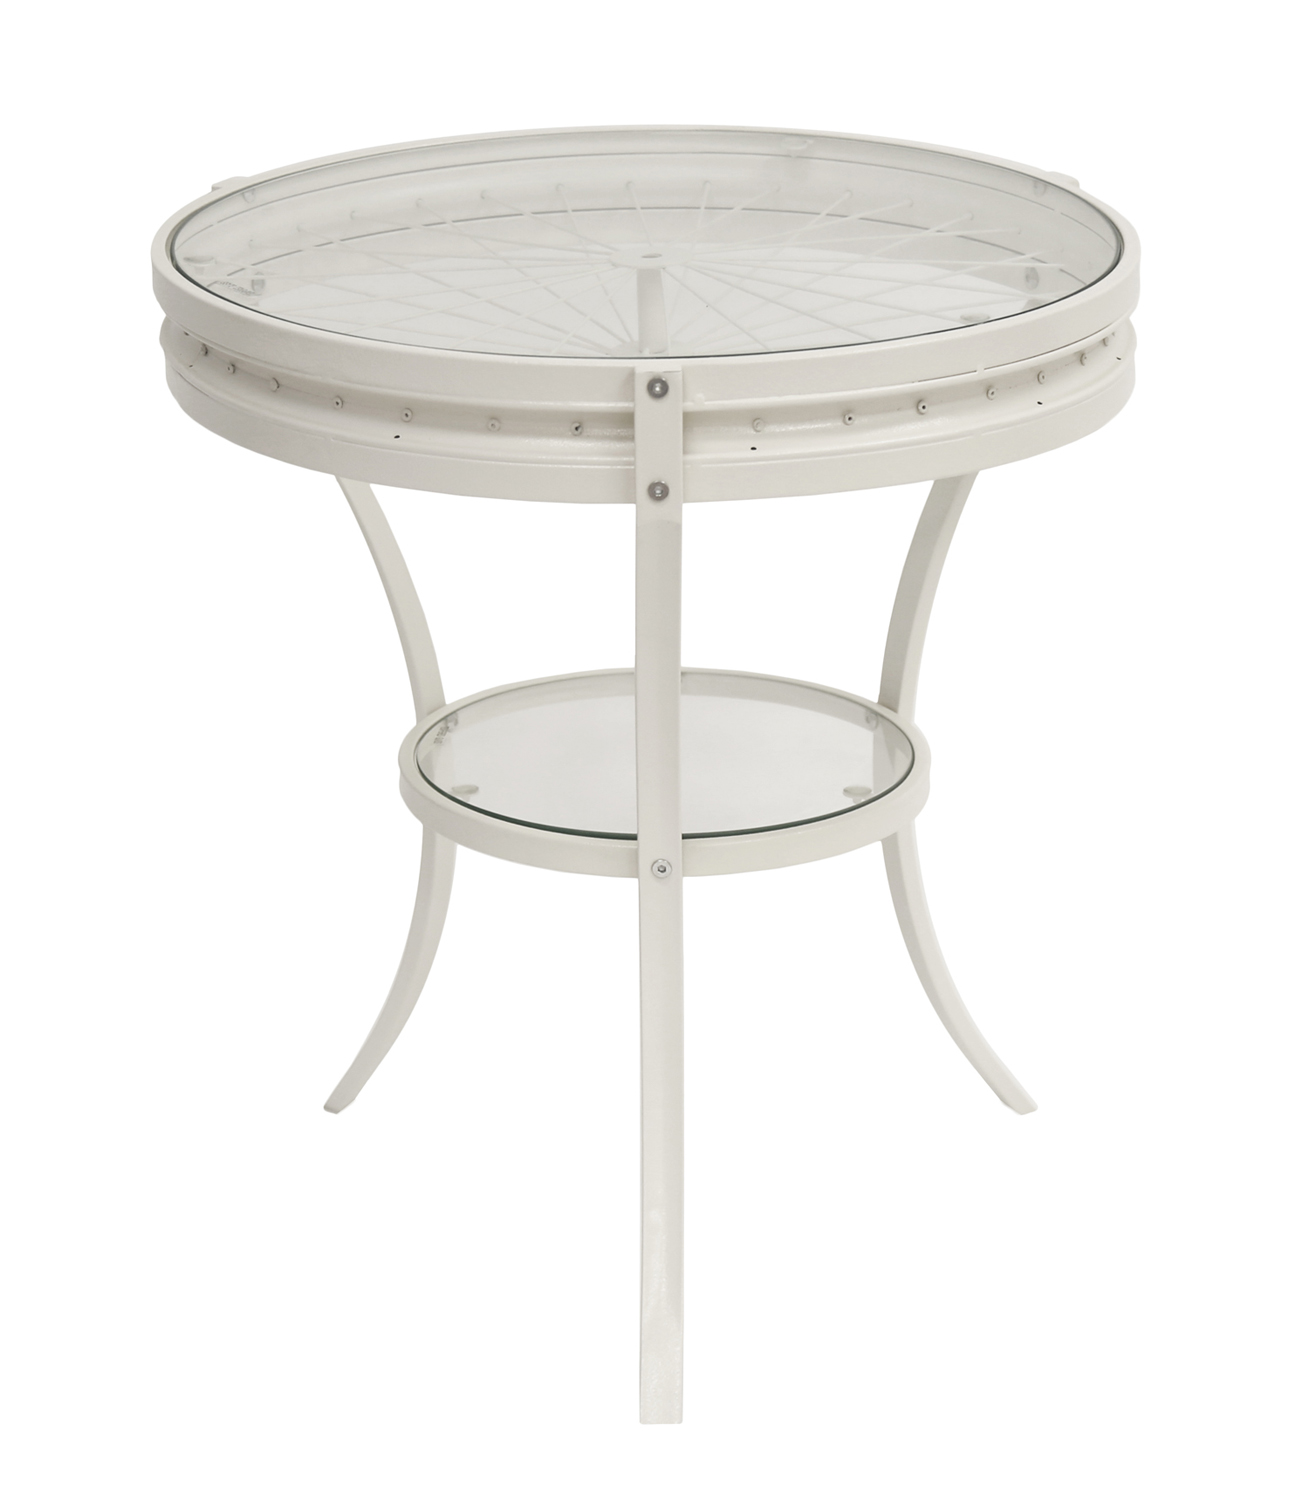 "20"" Accent Table with Tempered Glass, Antique White by Monarch Specialties"